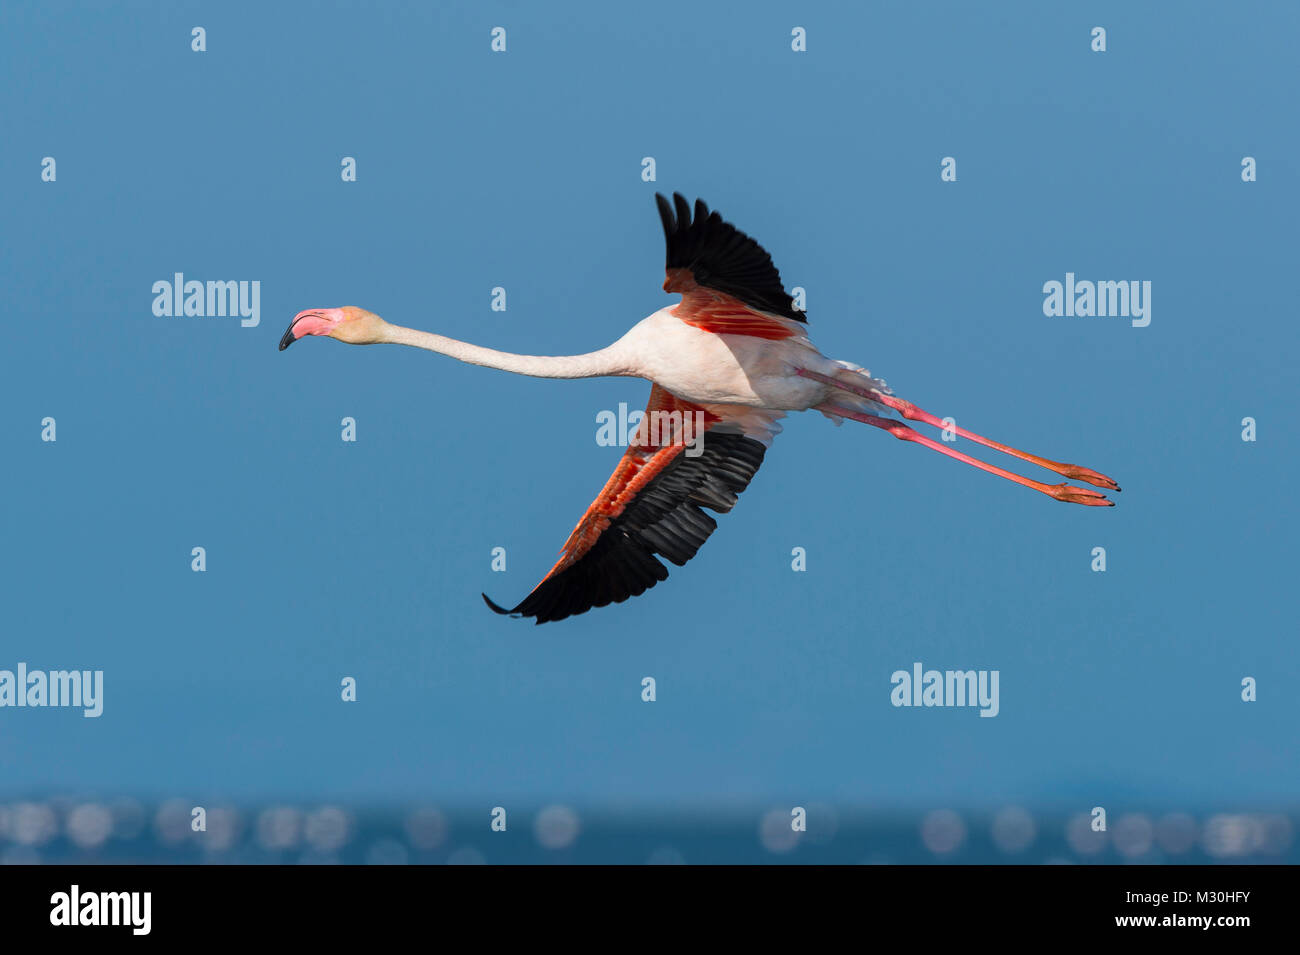 European Flamingo, Great Flamingo, Phoenicopterus roseus, in Flight, Saintes-Maries-de-la-Mer, Parc naturel régional - Stock Image